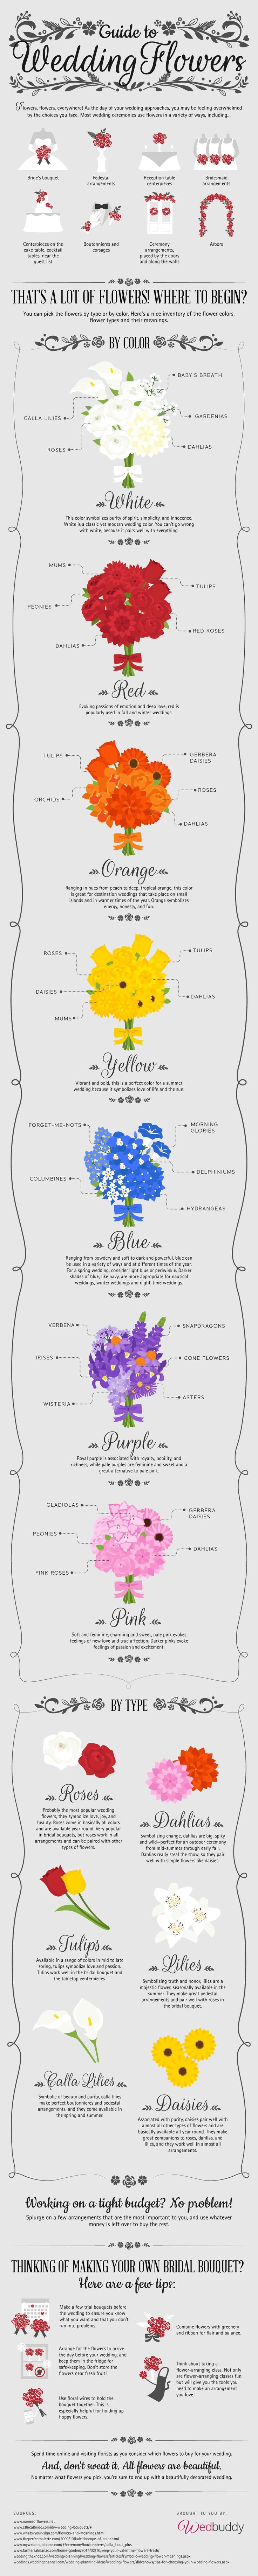 The flowers you choose for your perfect wedding day are important. They'll not only be photographed, but will be instrumental to the décor and theme of your wedding. Because flowers are an integral part of your wedding, you'll want to make sure you know all you can about the flowers you choose. Use this infographic to help you decide what flowers best suit your personal style at:	http://blog.wedbuddy.com/guide-flowers-ig/